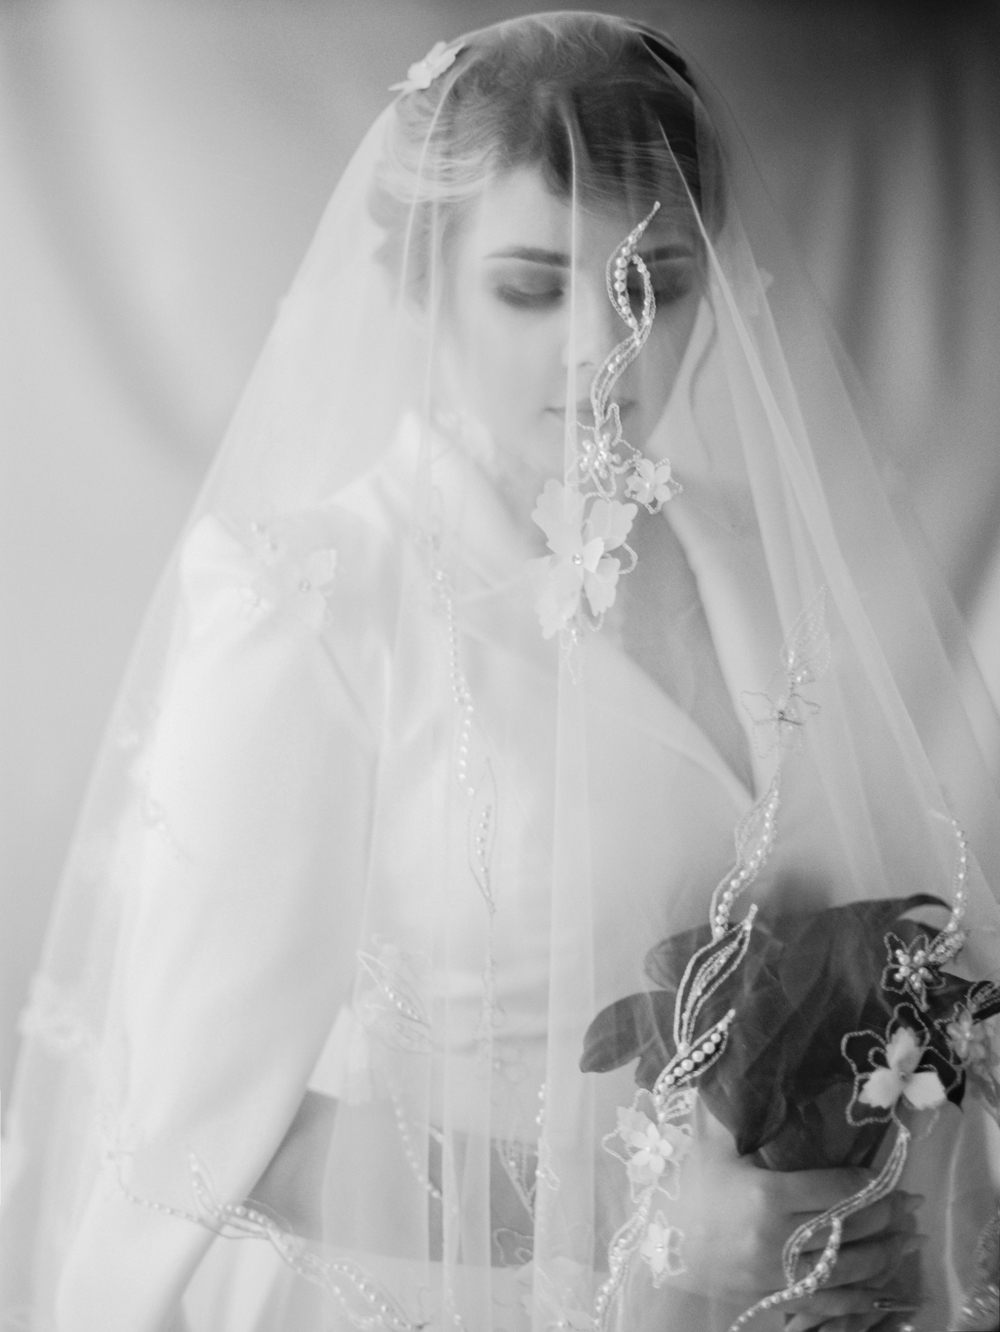 Fine art wedding photography in Kopenhagen